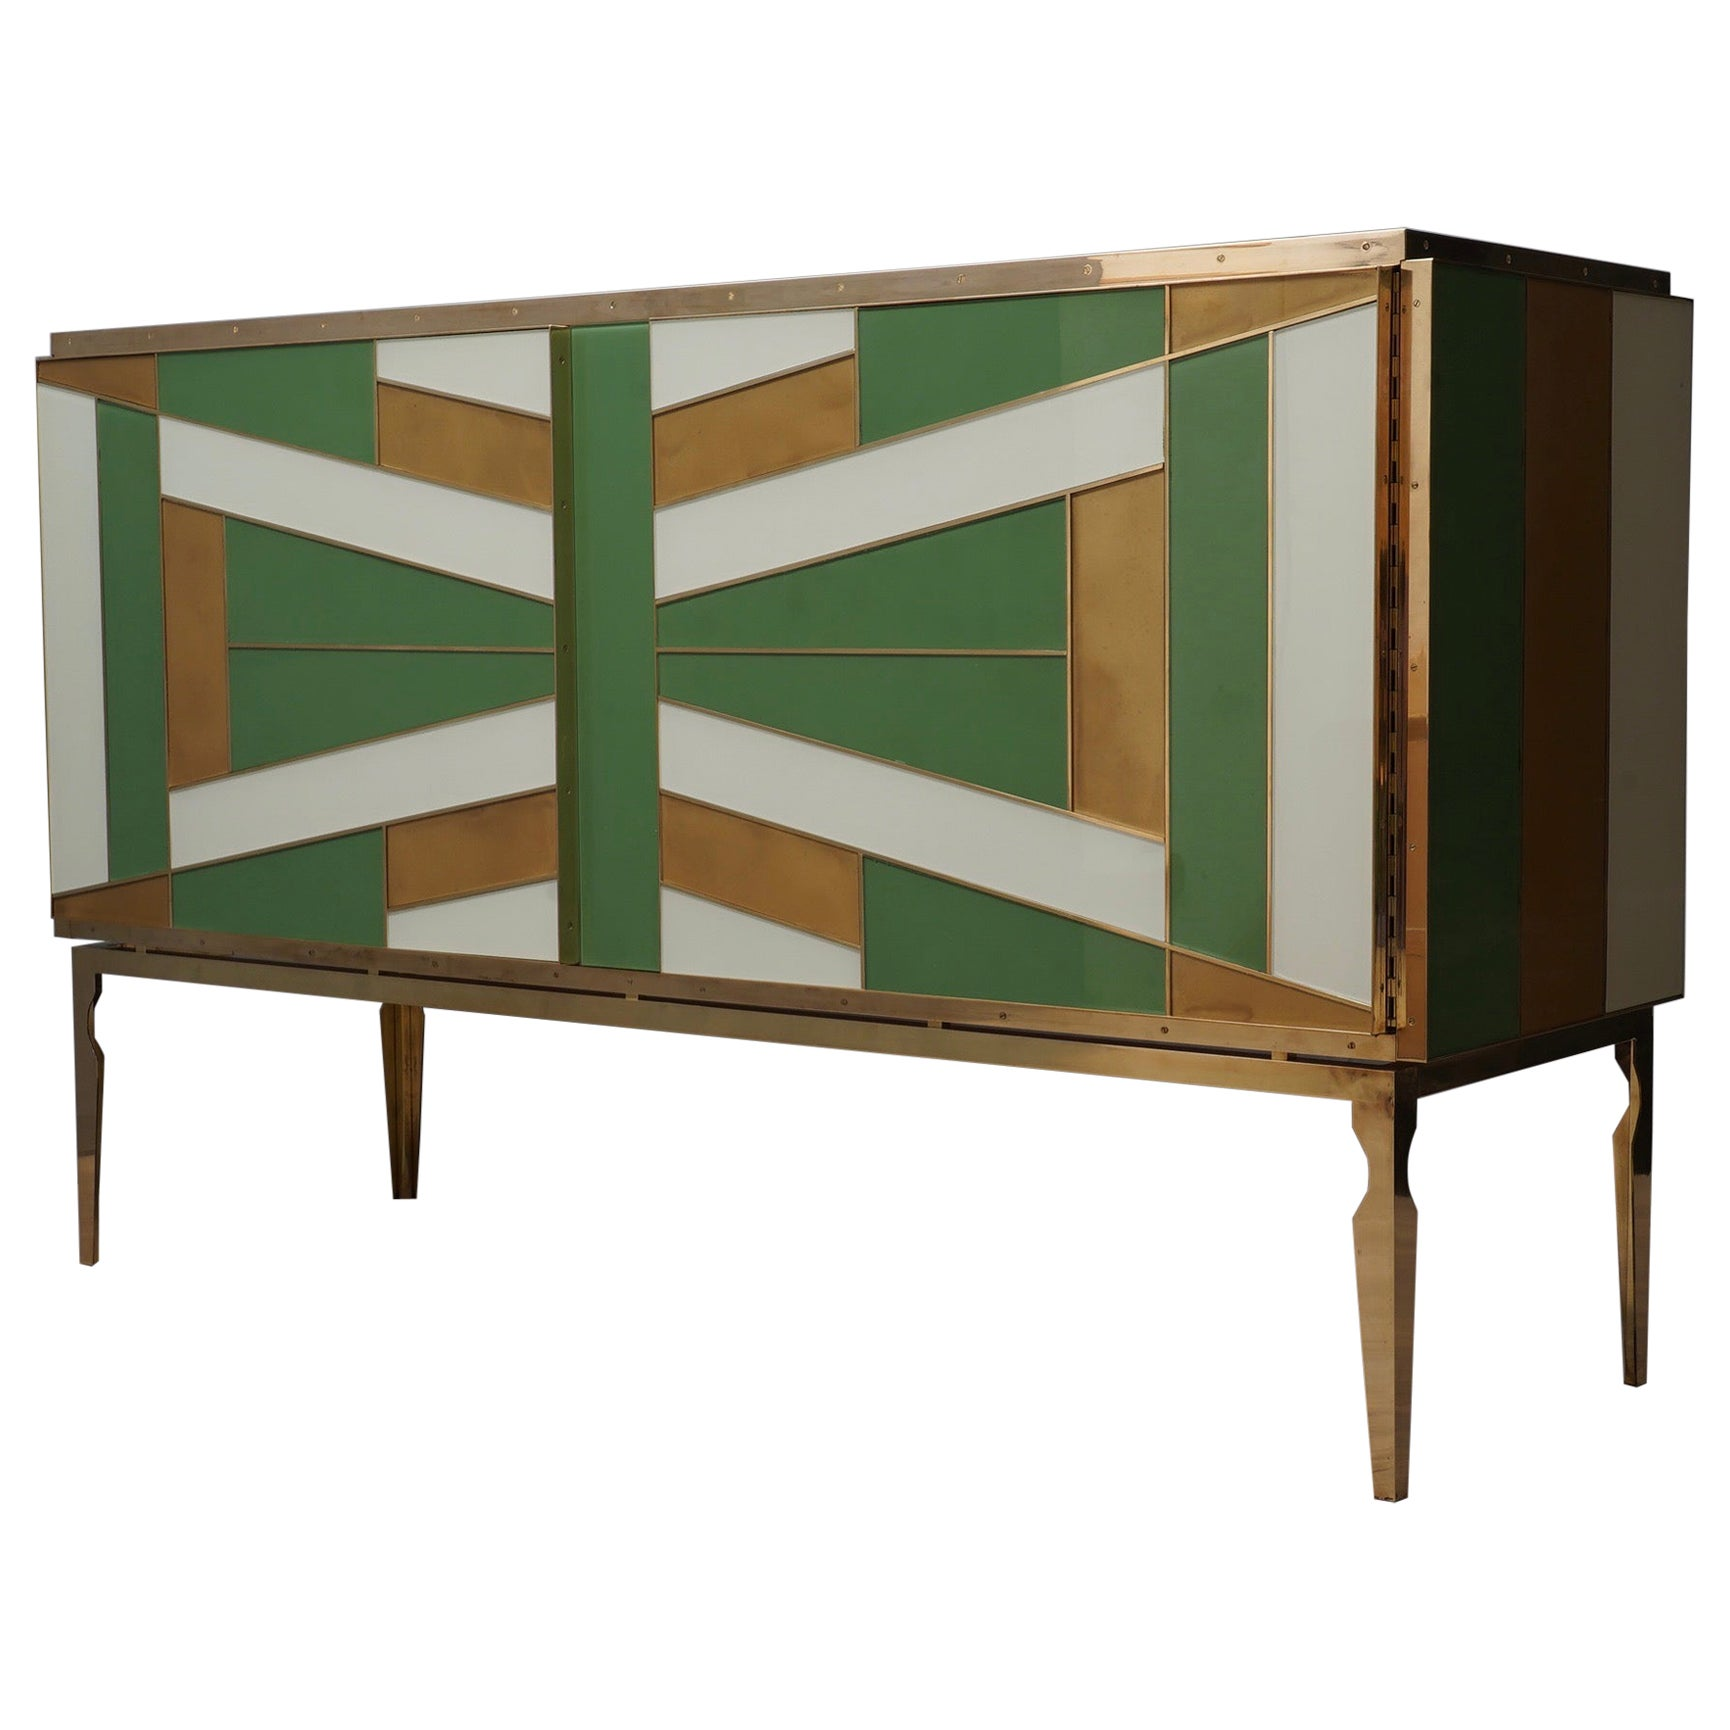 Midcentury Green Gold and ivory Colored Glass Sideboards, 2020